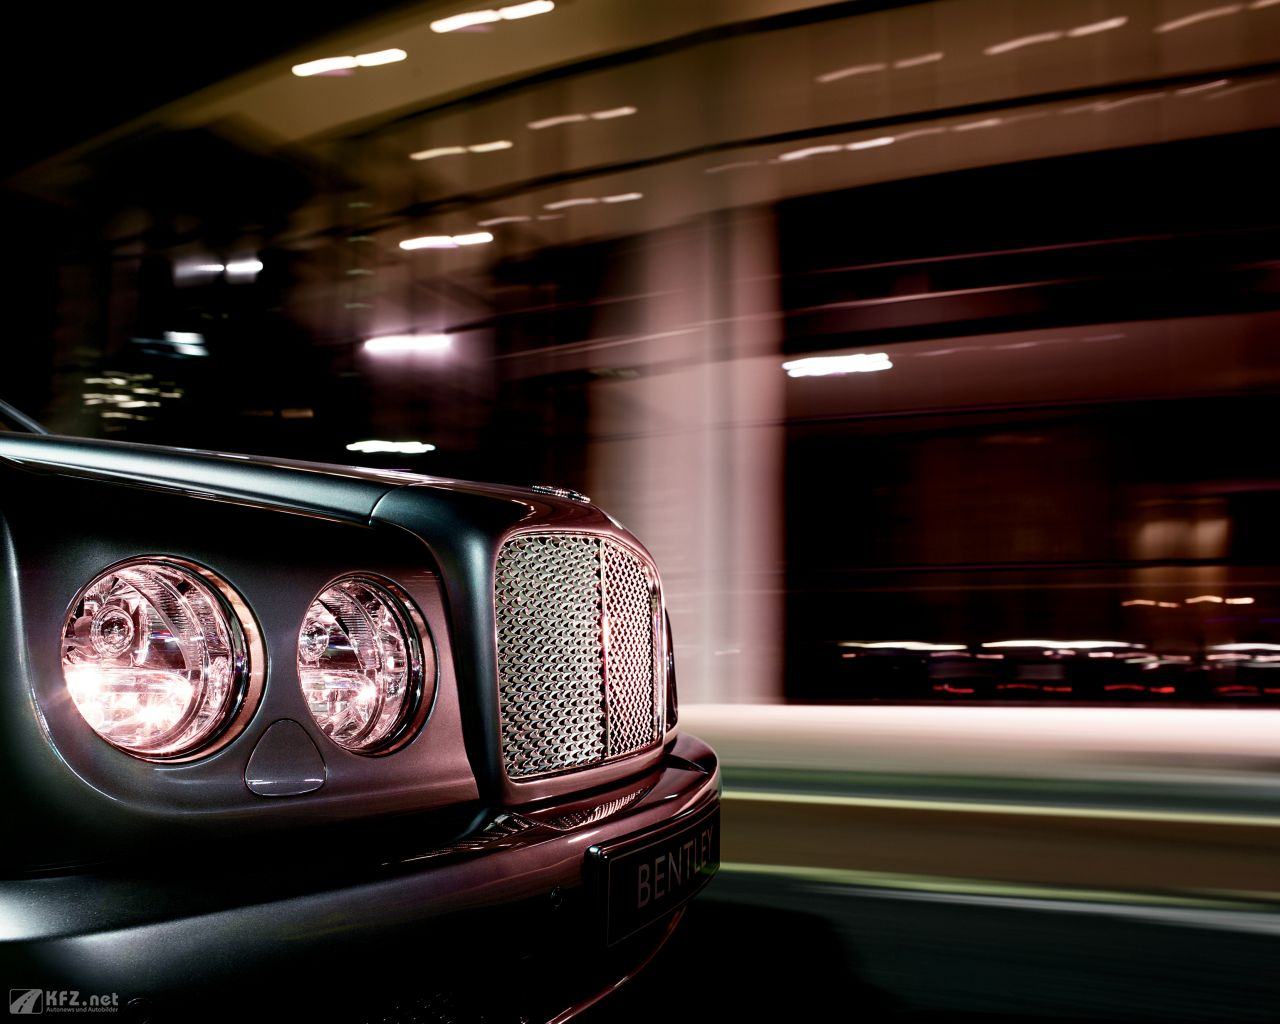 bentley-arnage-1280x1024-8